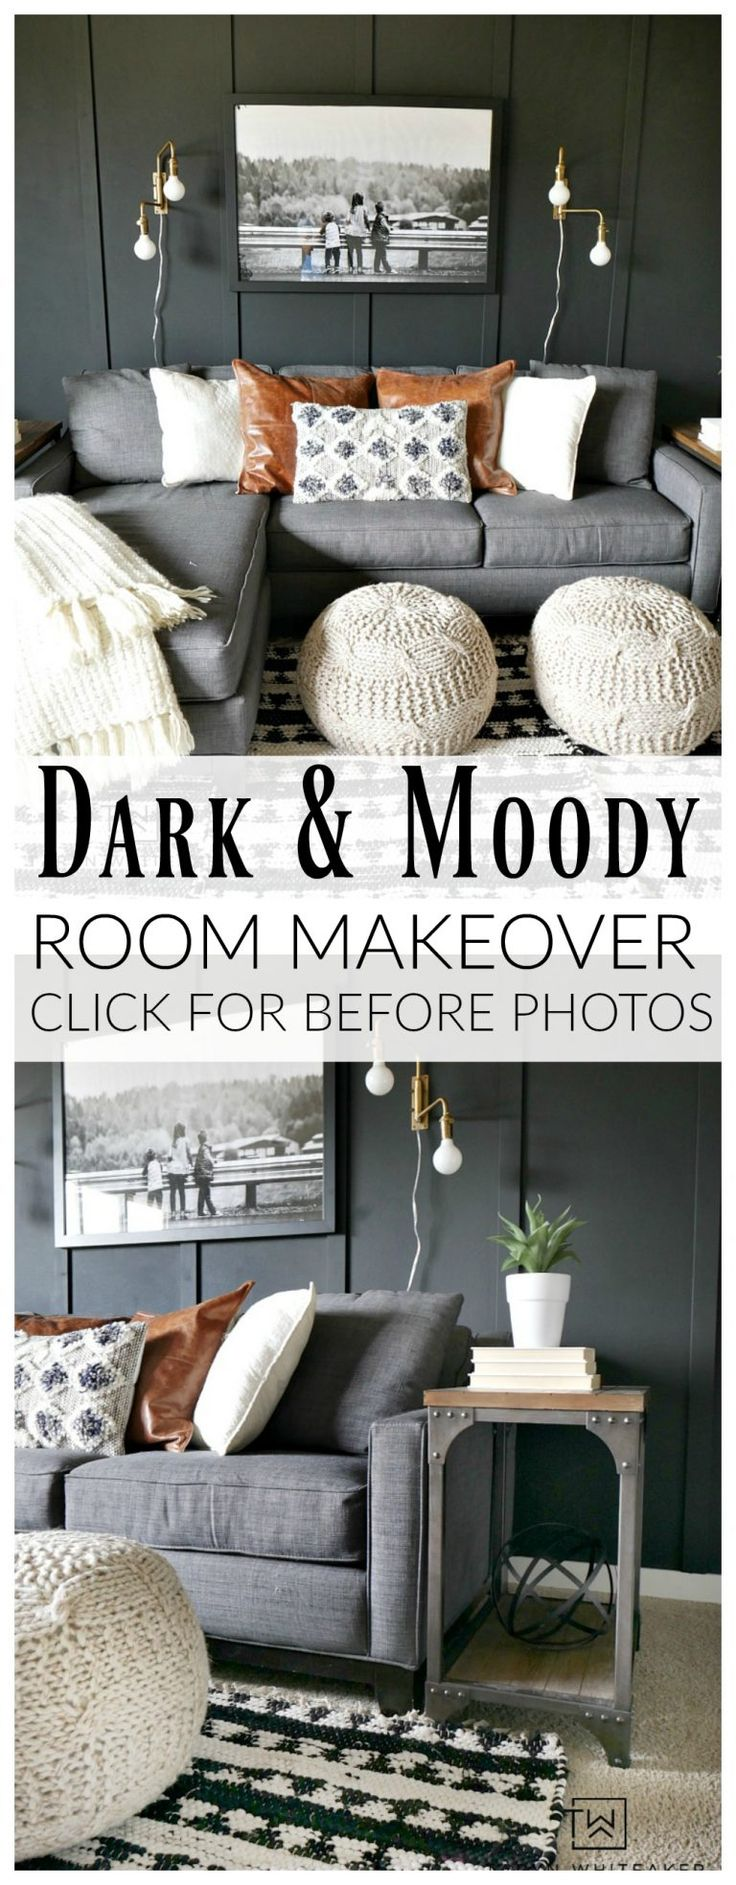 Check Out This Dark Moody Room Makeover With Rustic Modern